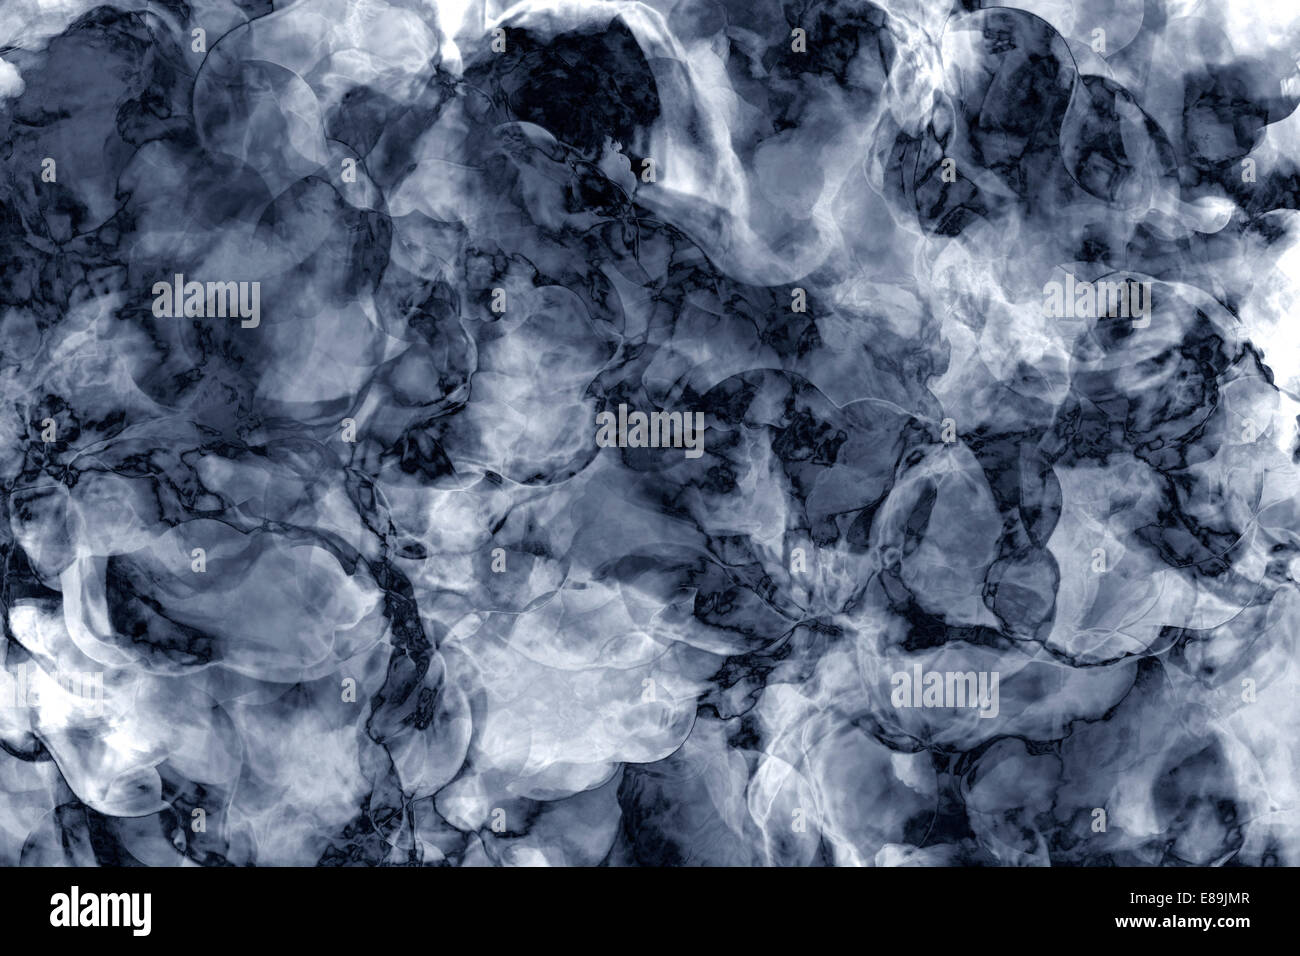 Popular Wallpaper Marble Artsy - blue-and-white-background-marble-wall-texture-E89JMR  Trends_813343.jpg